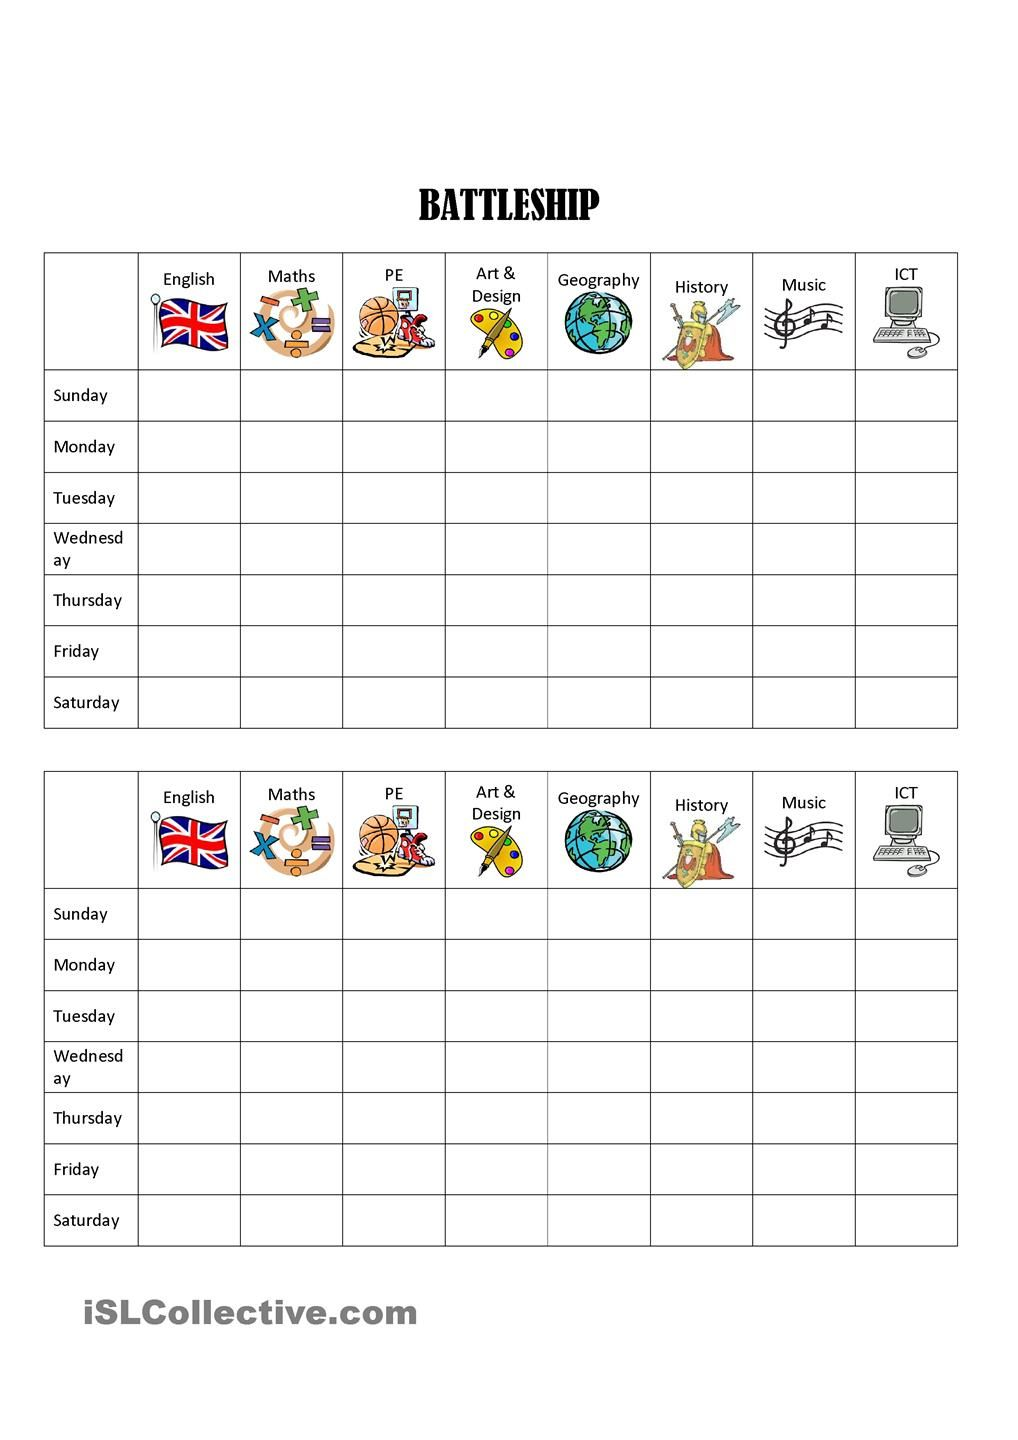 Worksheet Battleship Game Worksheet Carlos Lomas Worksheet For